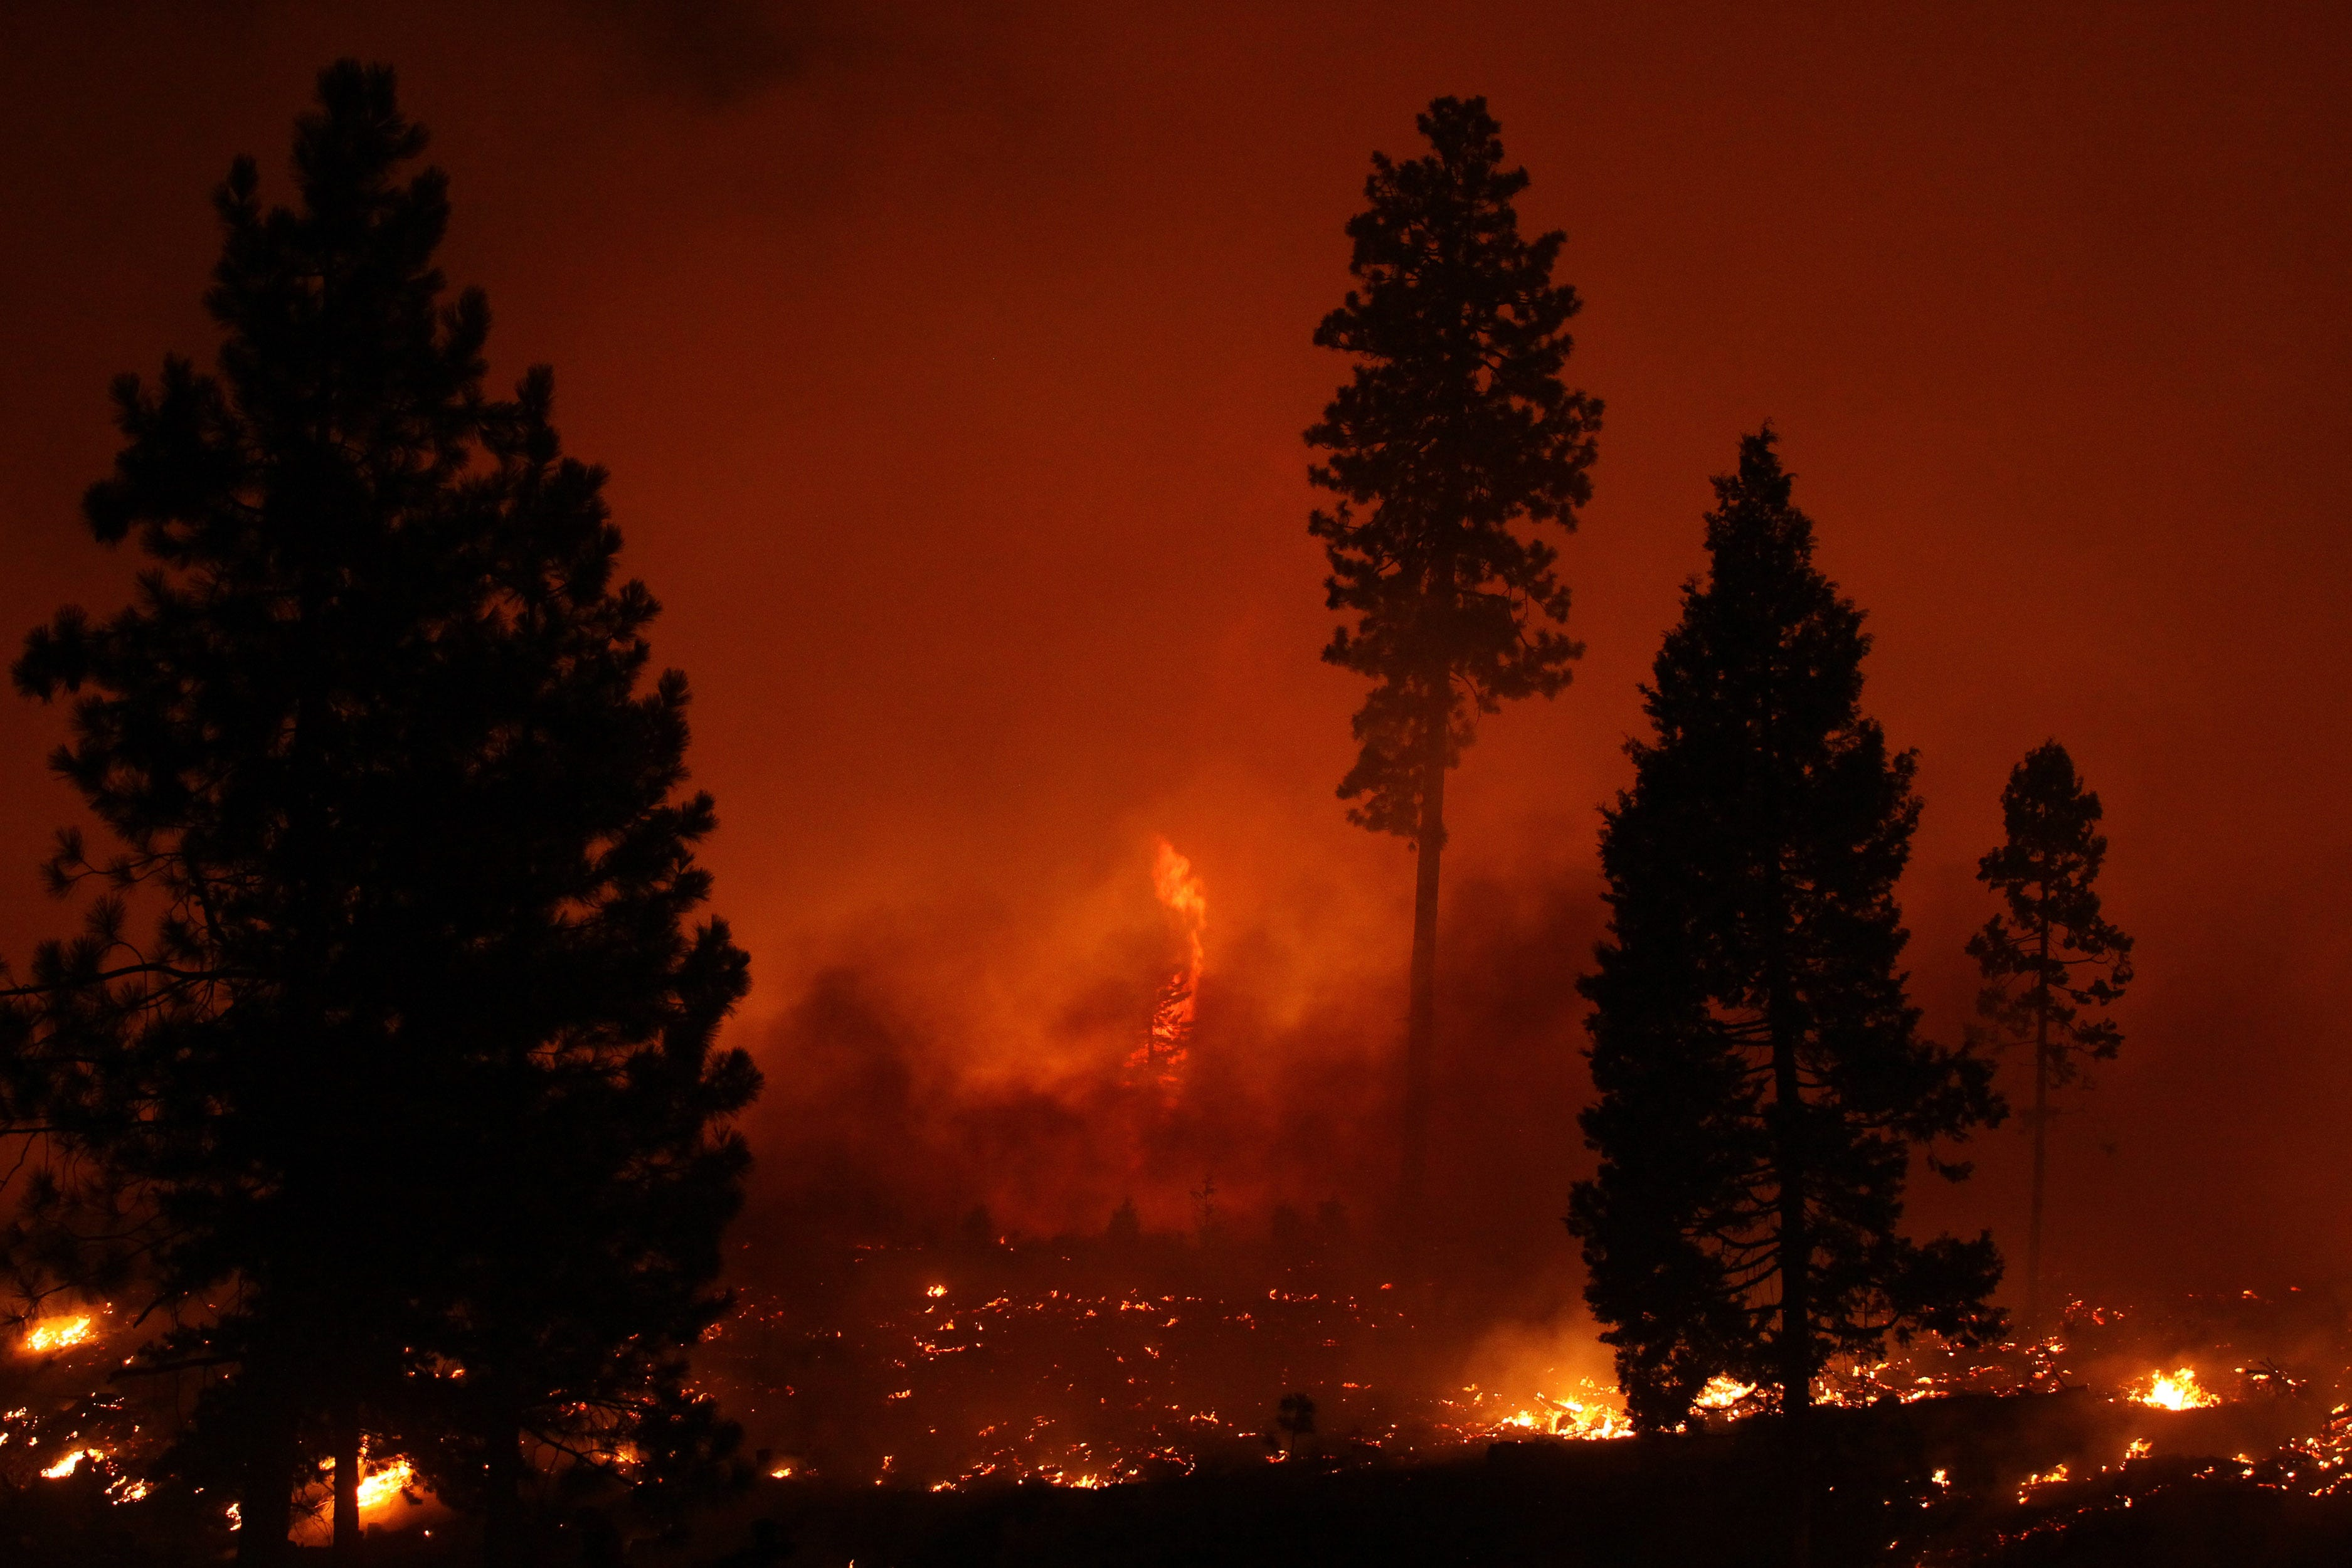 US Forest Service is closing California s national forests as wildfires spread